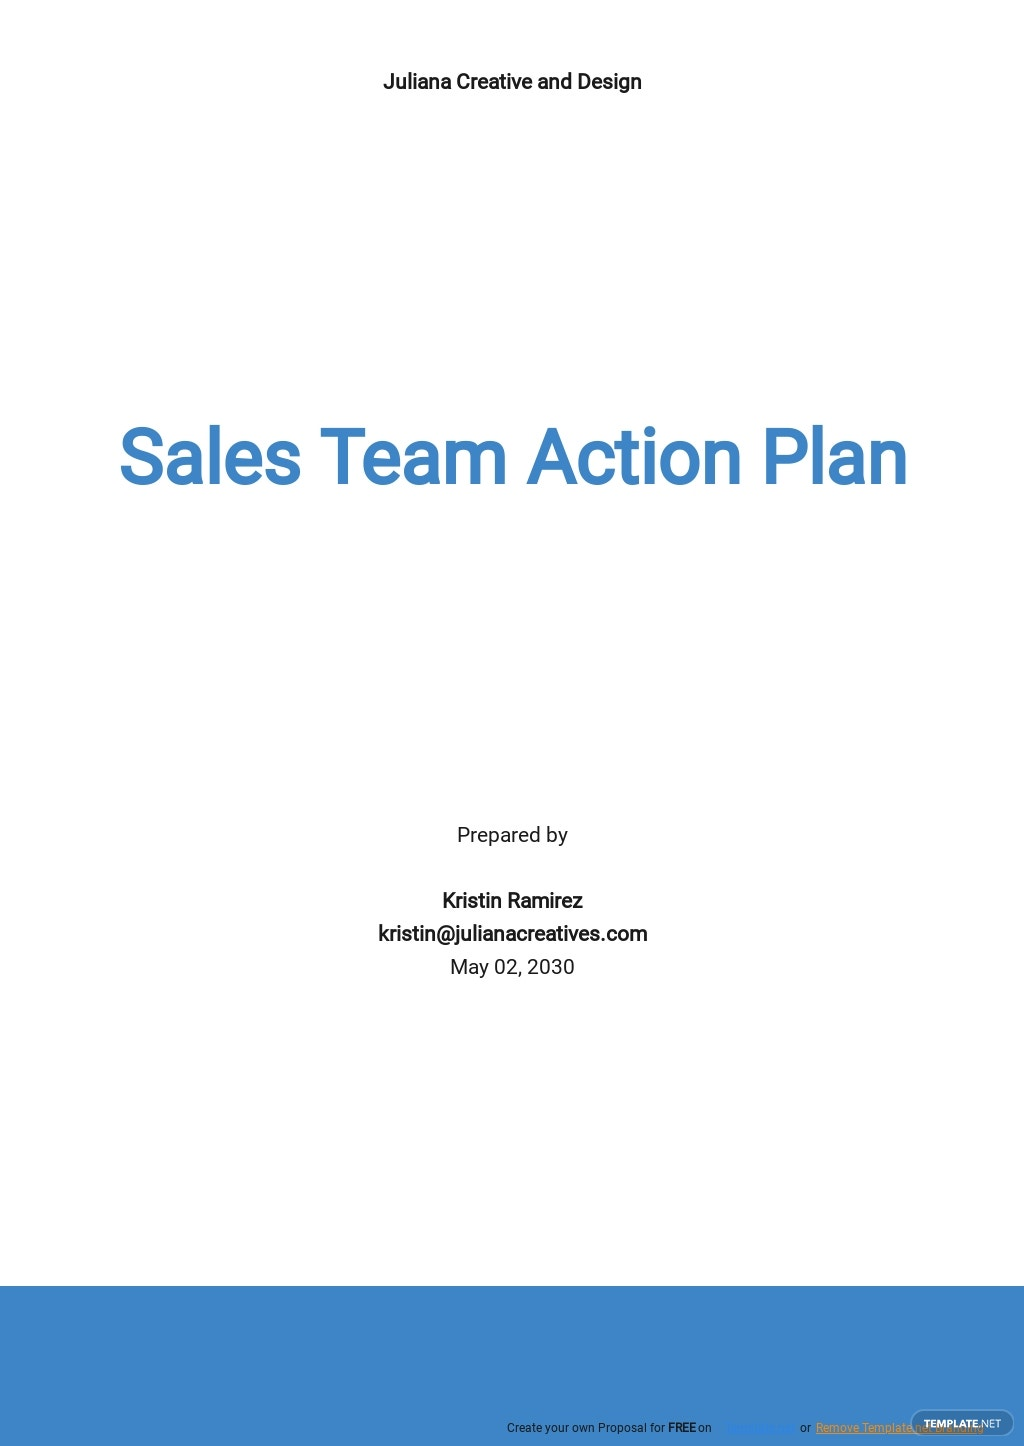 Sales Team Action Plan Template